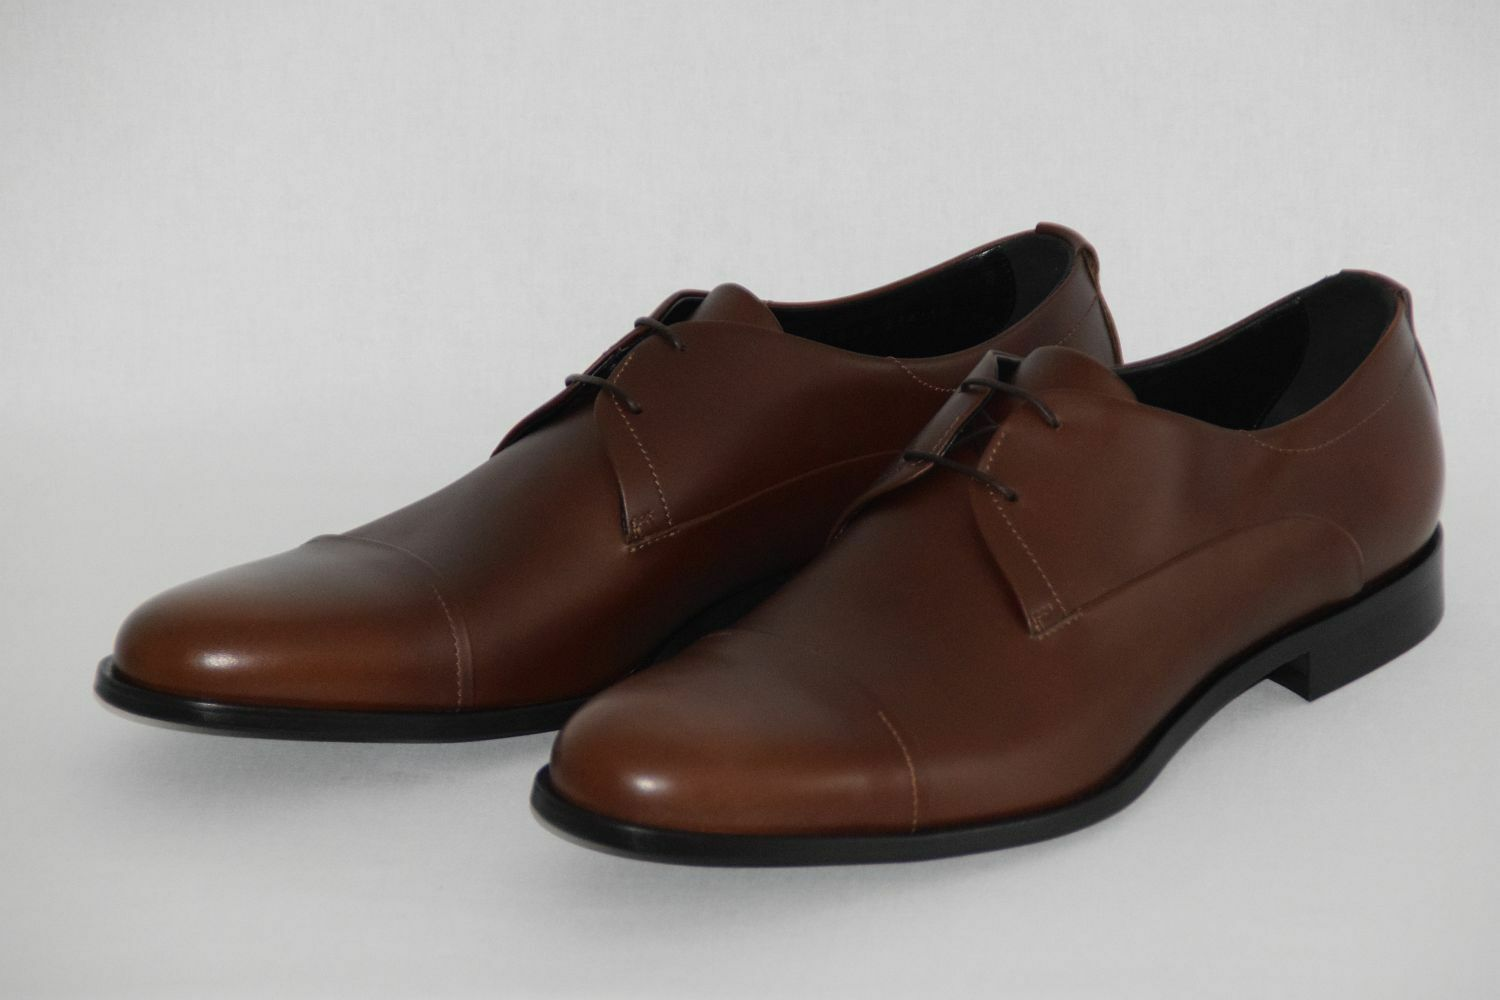 HUGO BOSS Business Chaussures, Taille UE 44, UK 10, US 11, Made in , Medium marron